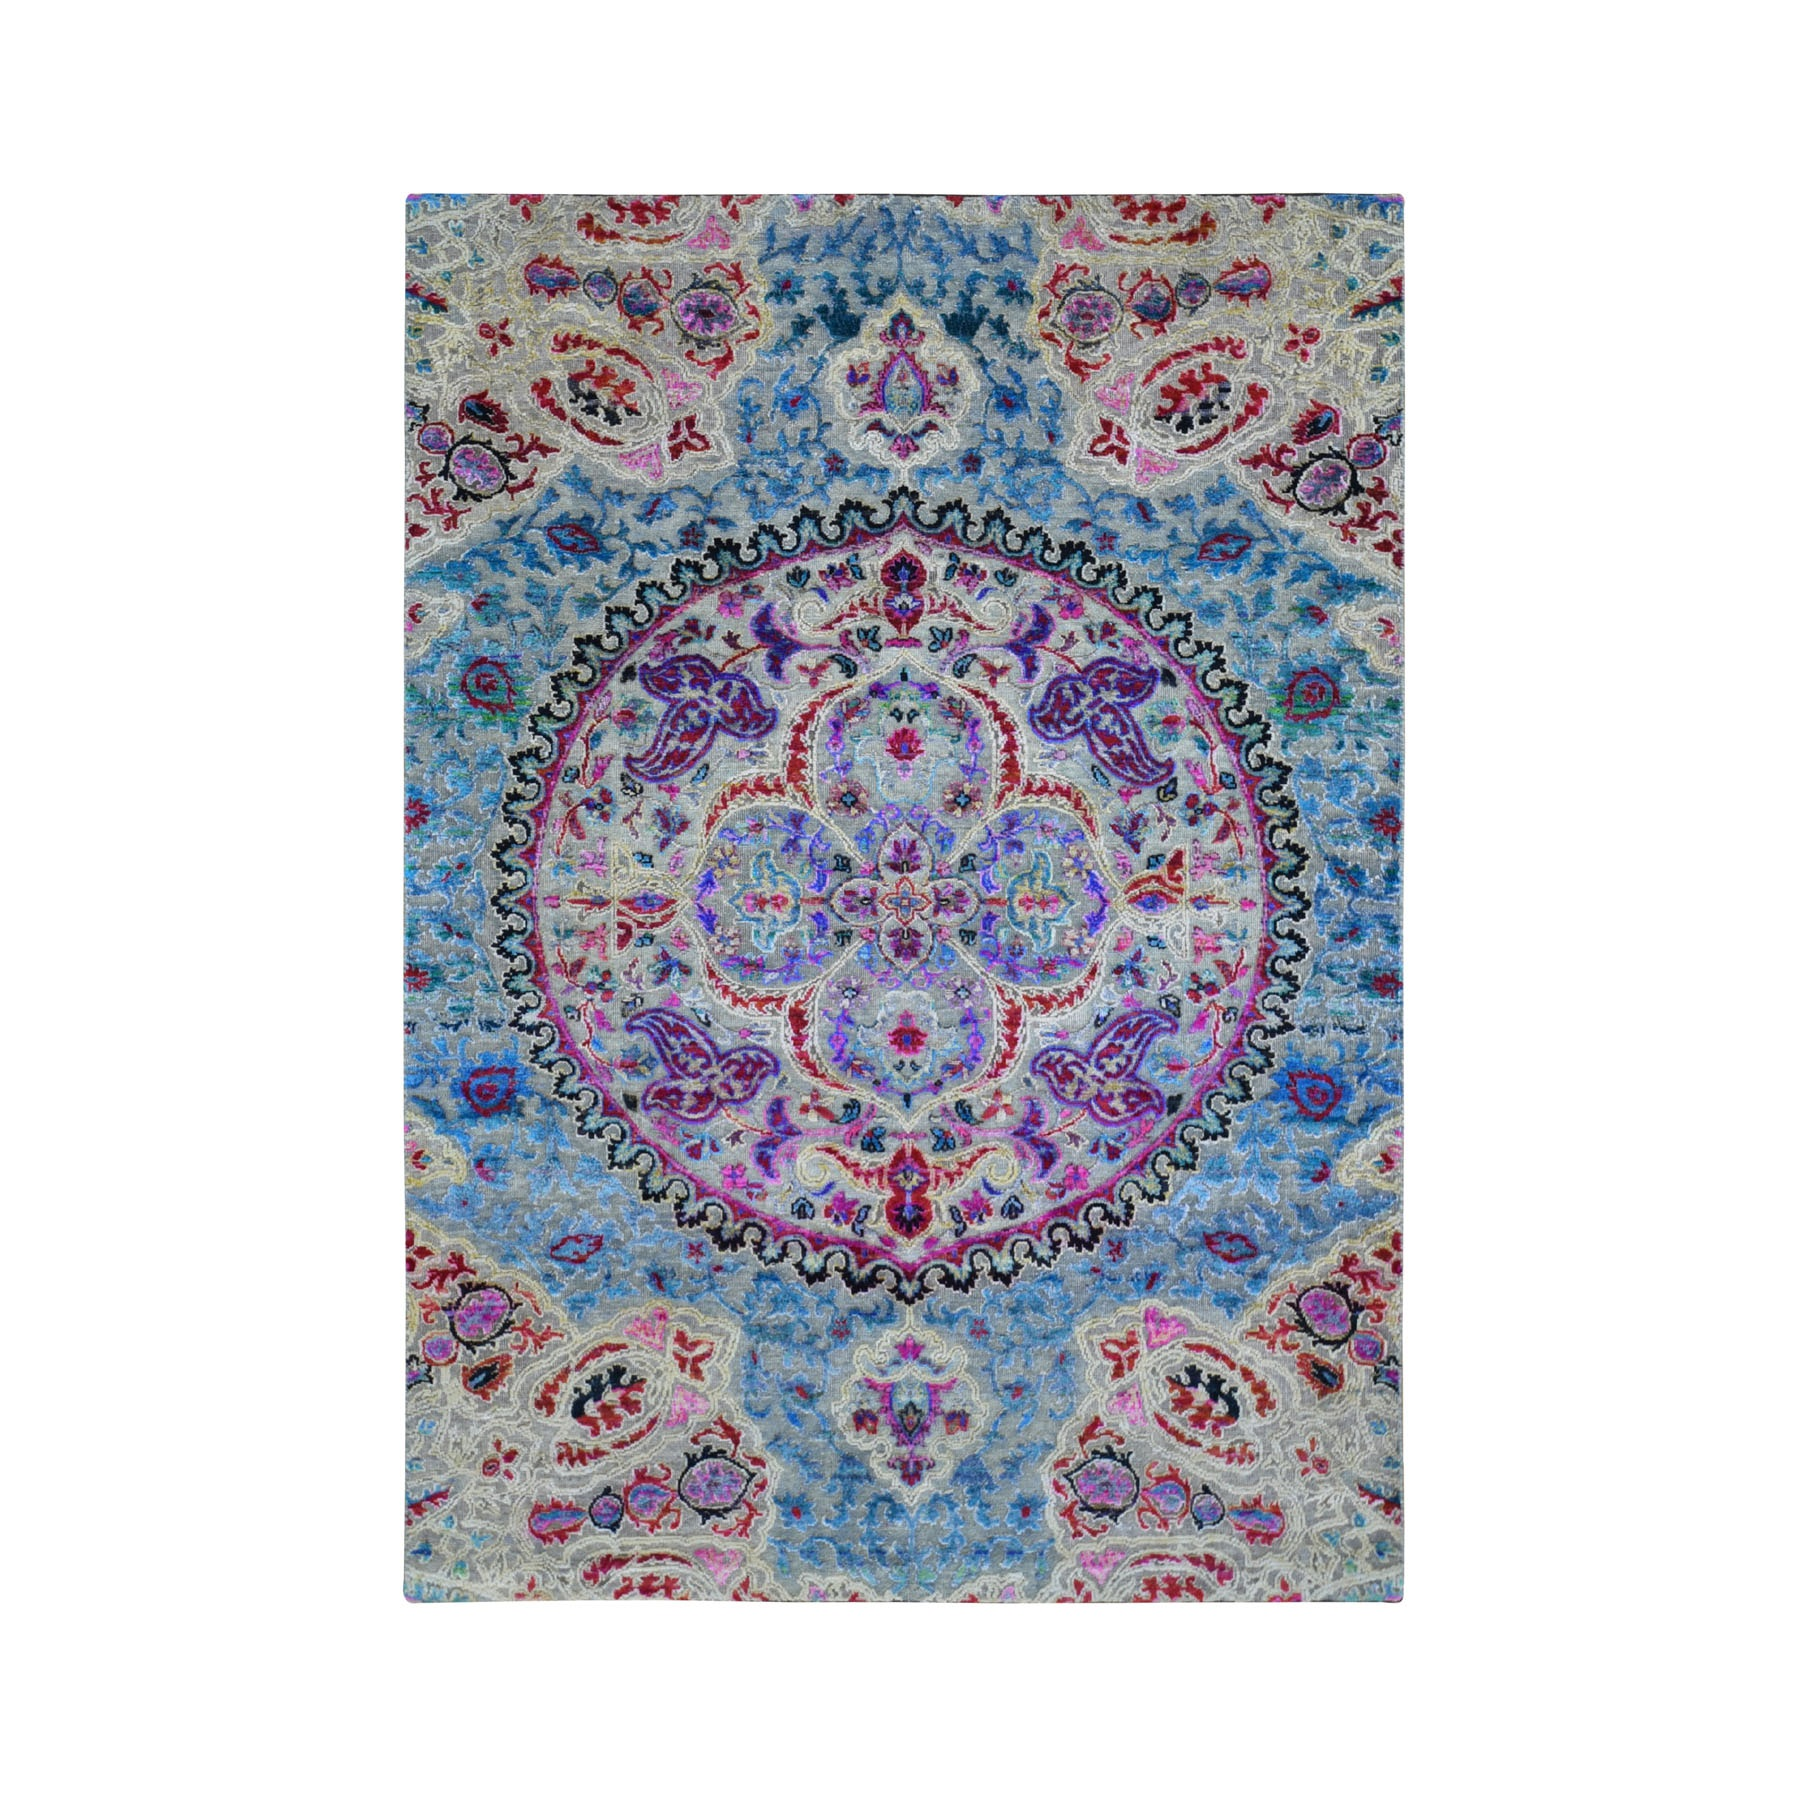 5'X7' Sari Silk And Textured Wool Colorful Maharaja Design Hand Knotted Oriental Rug moae9a7d